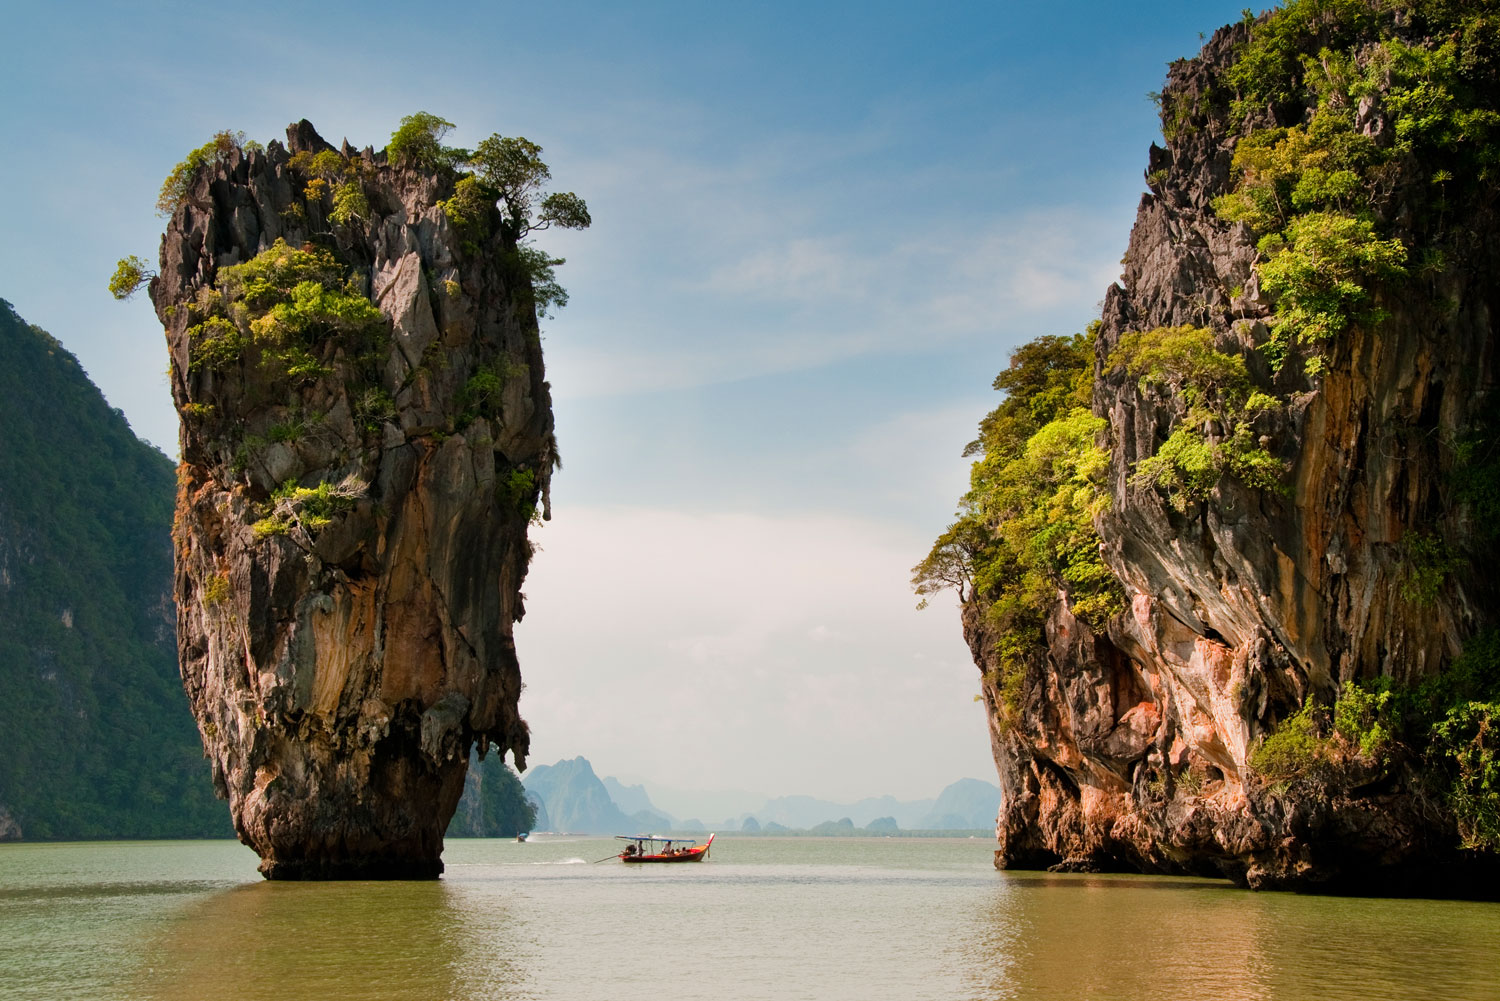 Speedboat tour around Phang Nga Bay, Phuket, Thailand.